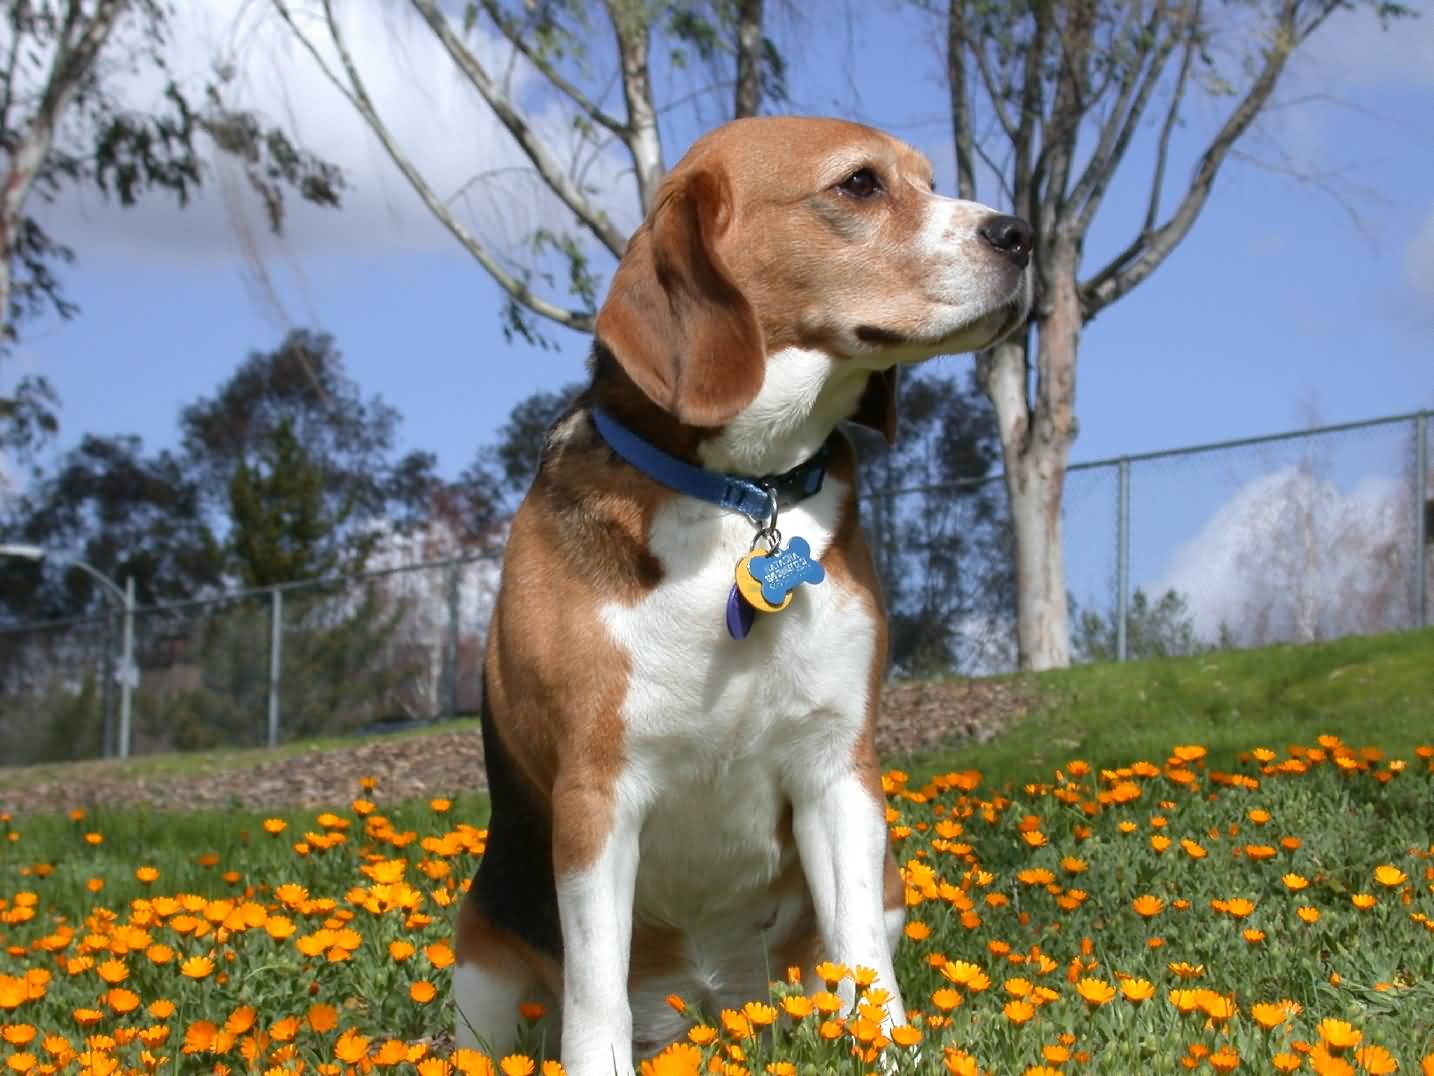 Most Beautiful Beagle Dog Full Grown In Garden